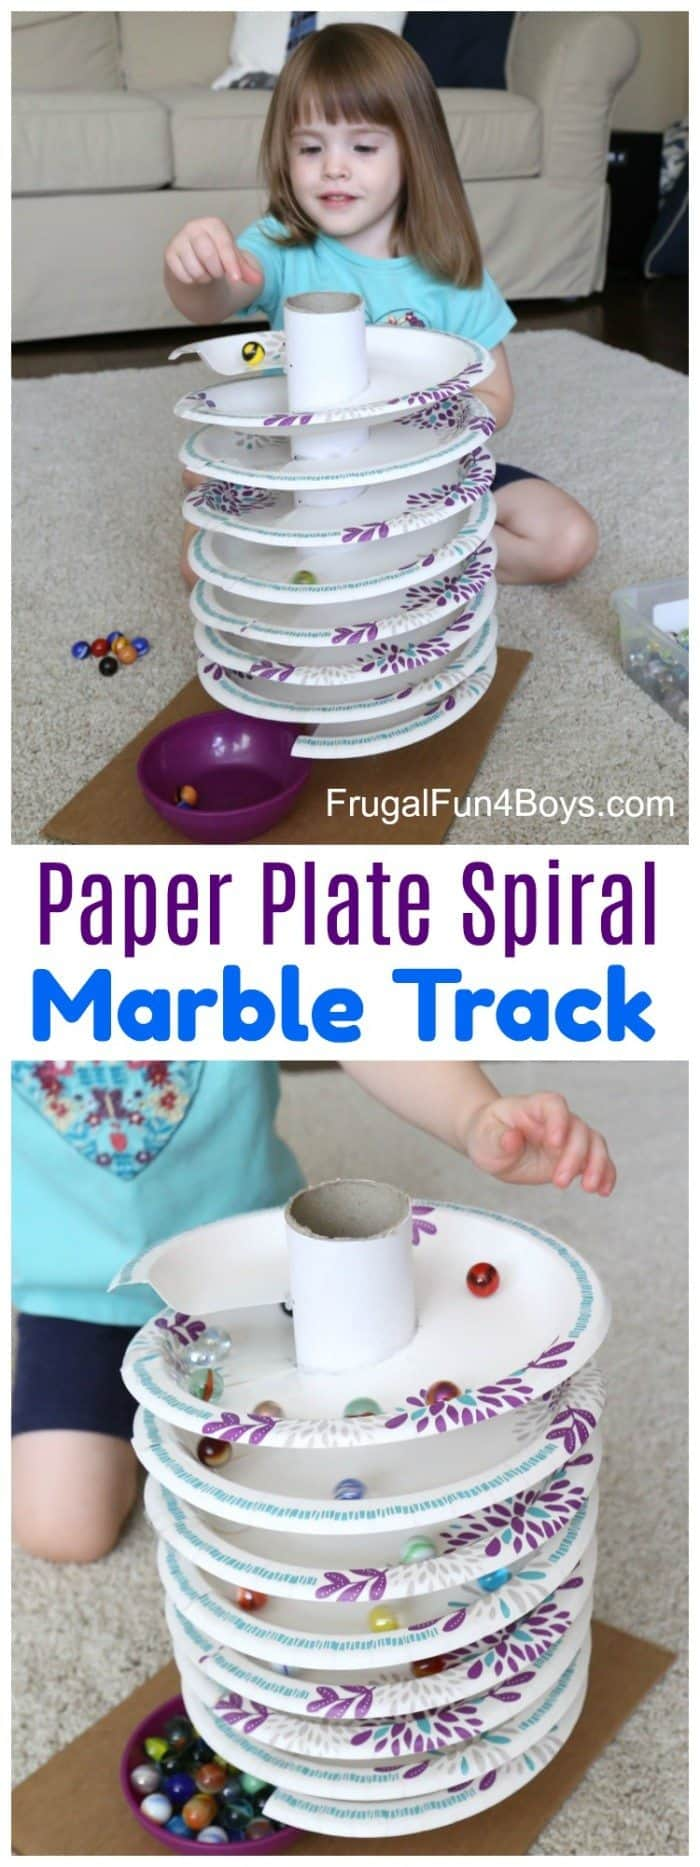 Spiral-Marble-Track-Pin